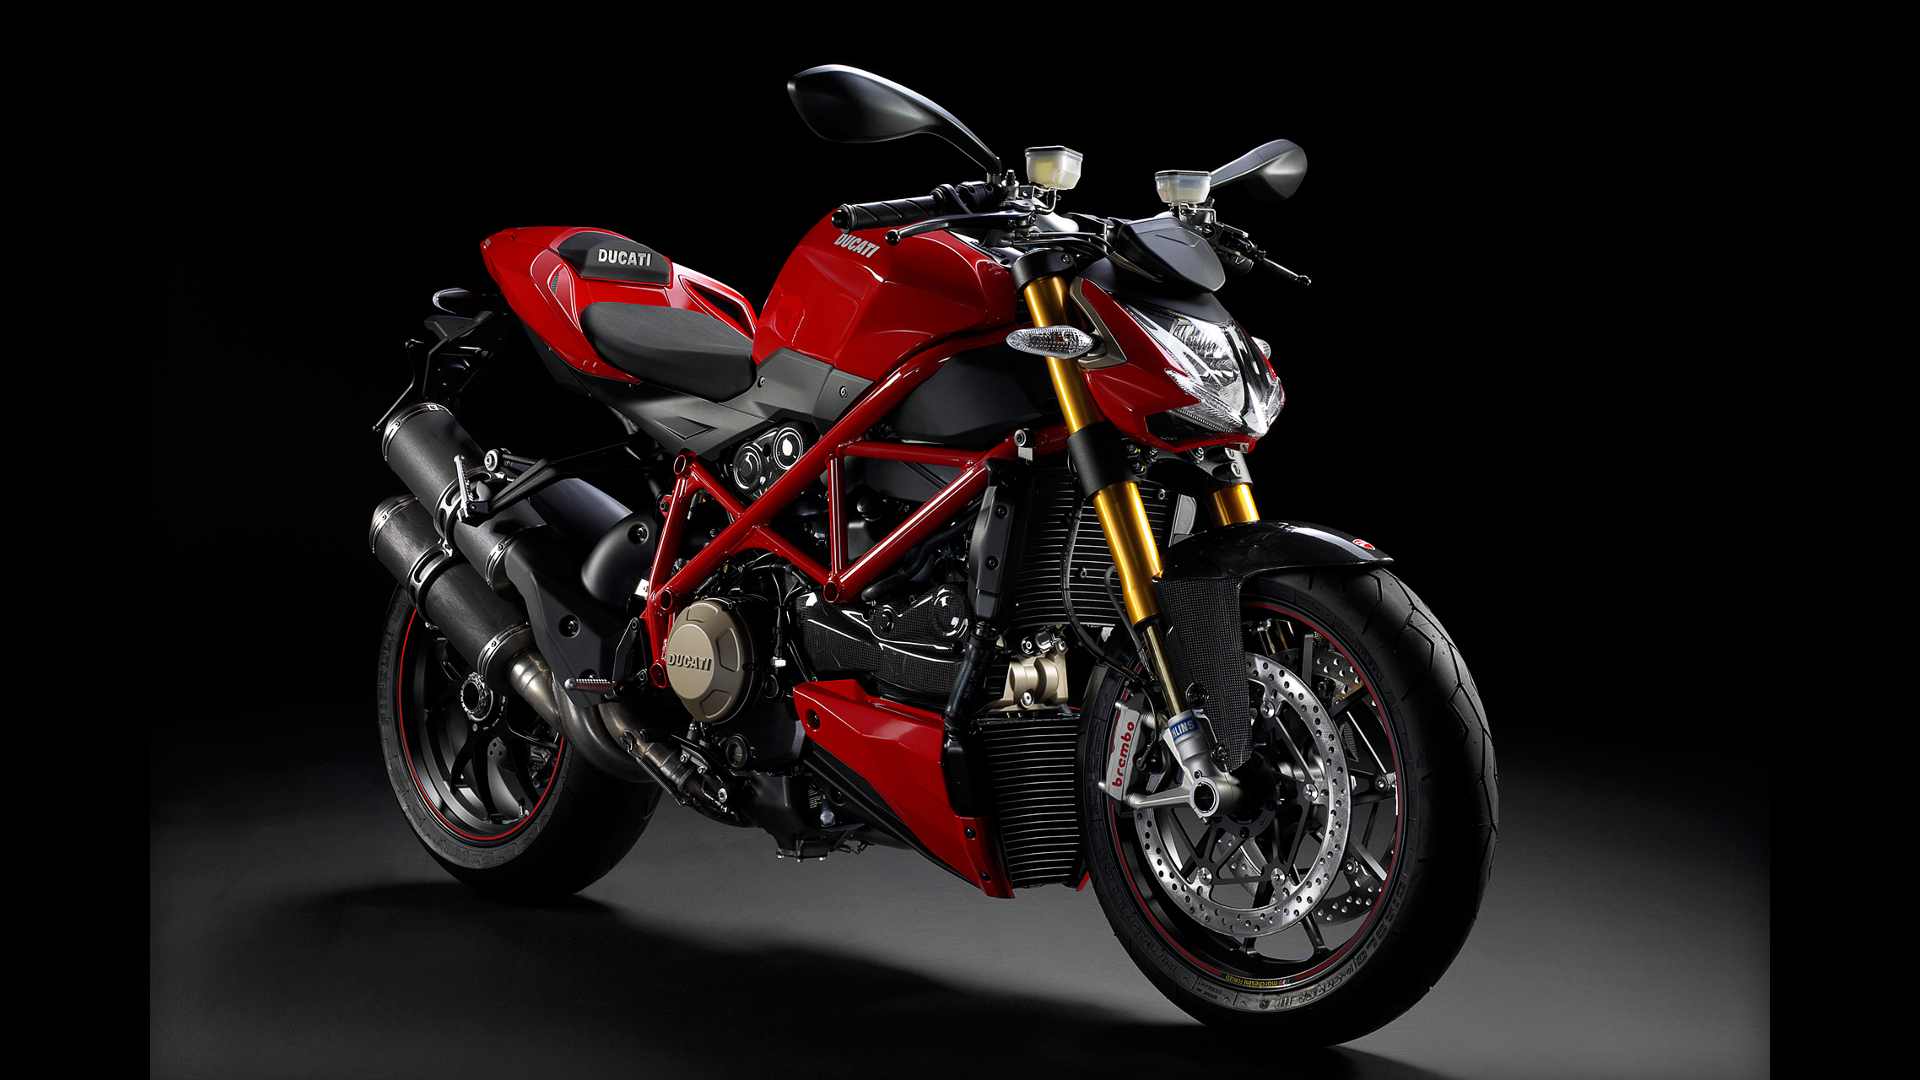 Ducati vehicles motorbikes streetfighter HD Wallpaper